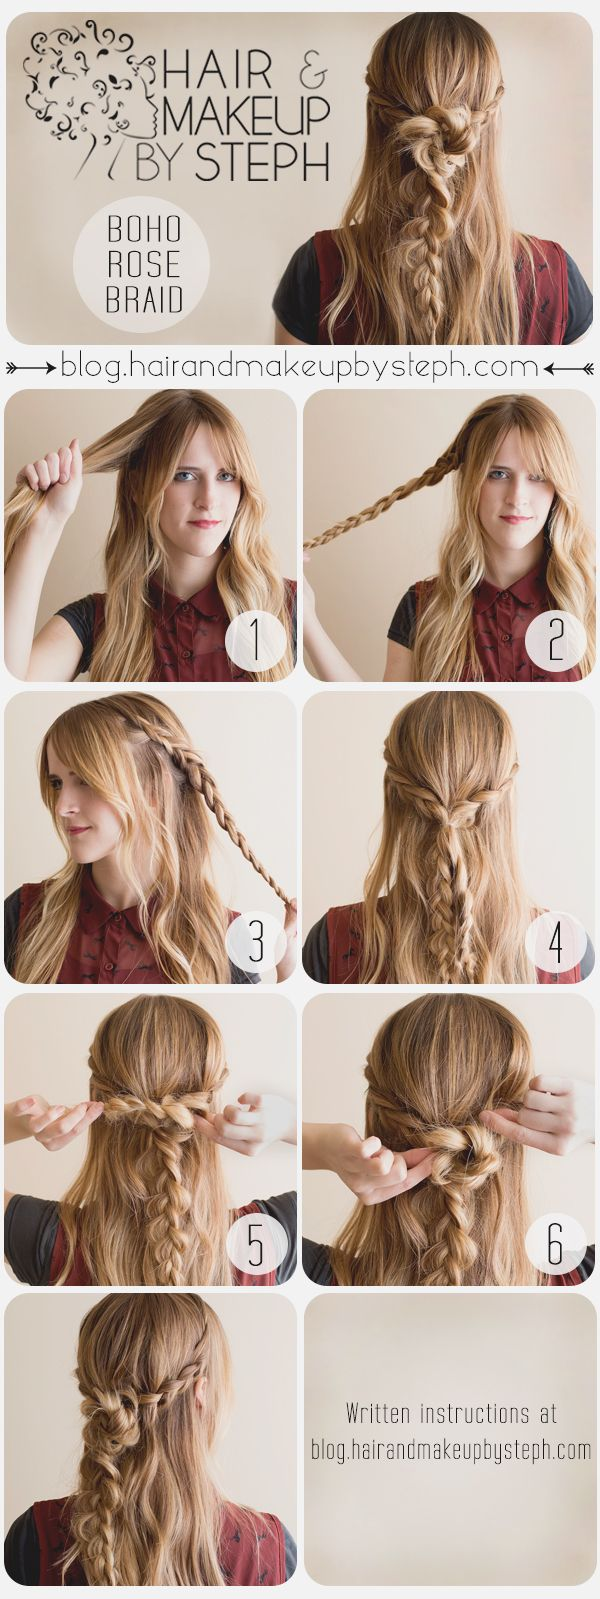 music festival series #3 - boho rose braid | rose braid, boho and rose